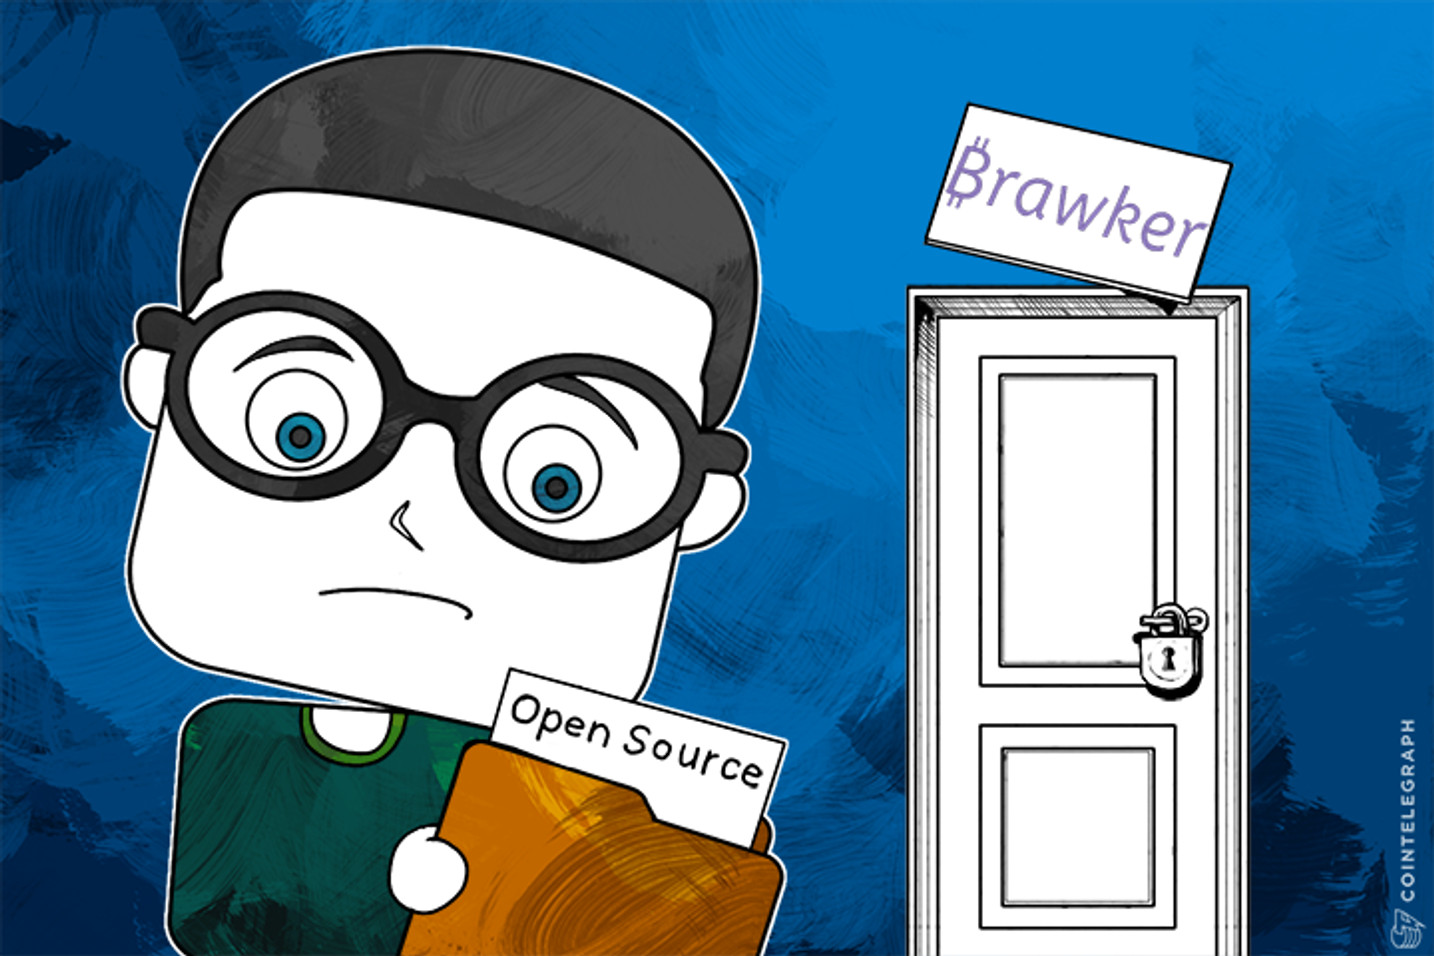 Bitcoin Marketplace Brawker Shuts Down, Open Sources the Platform